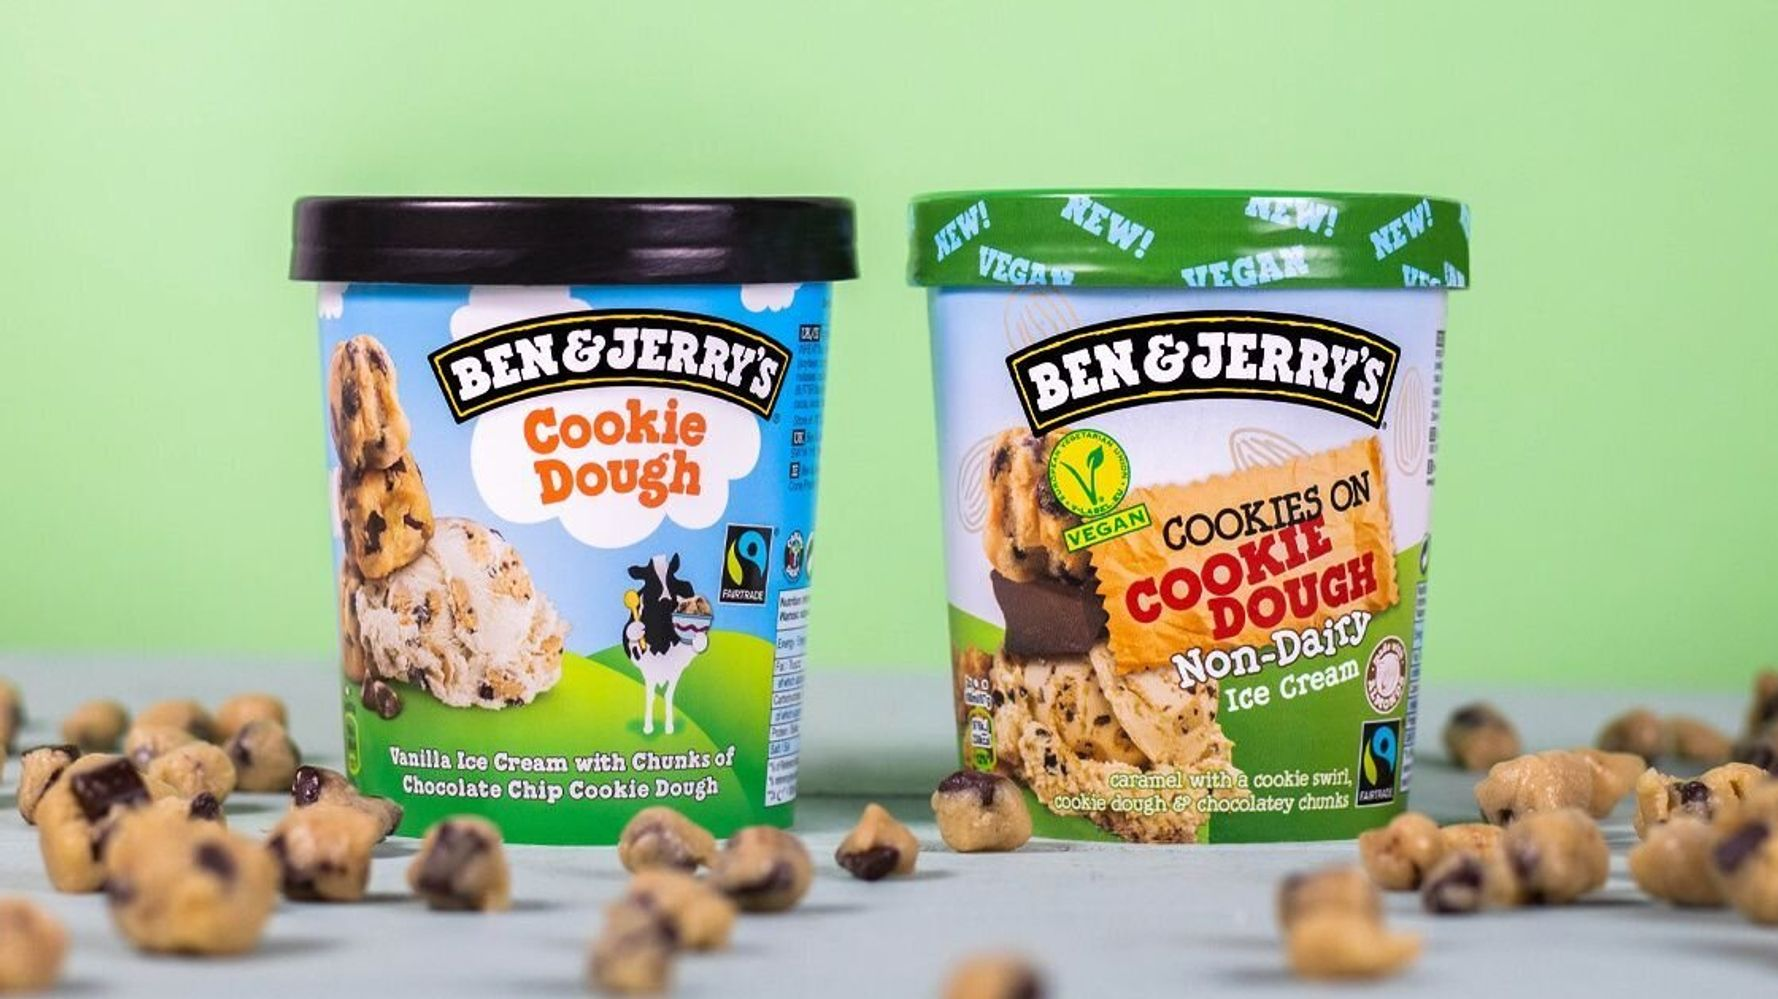 We Tried Ben & Jerry's Vegan Cookie Dough Ice Cream – Here's The Verdict